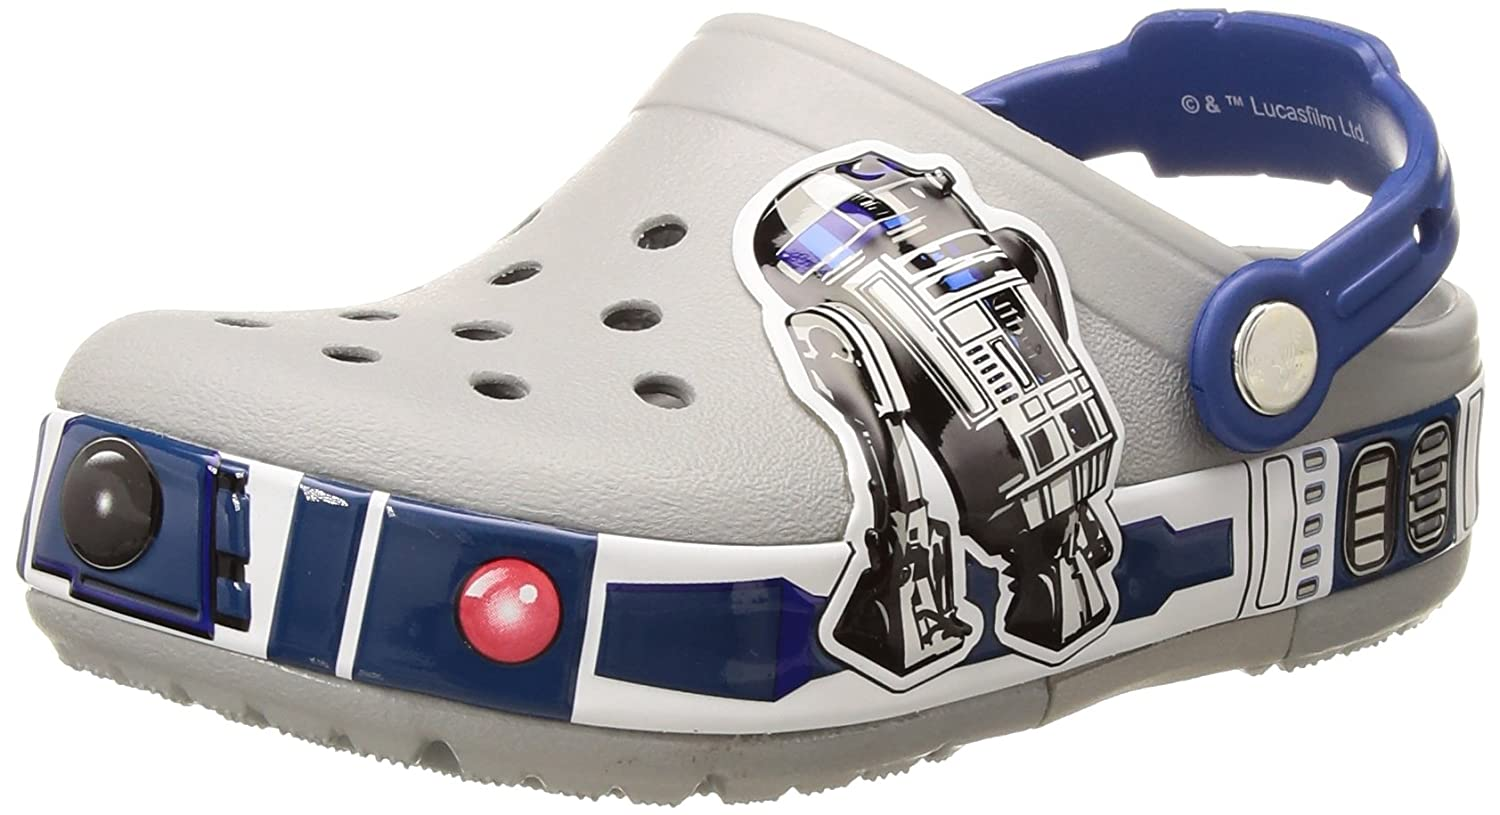 Crocs Kids' Crocband R2D2 Light-Up Clog 205008